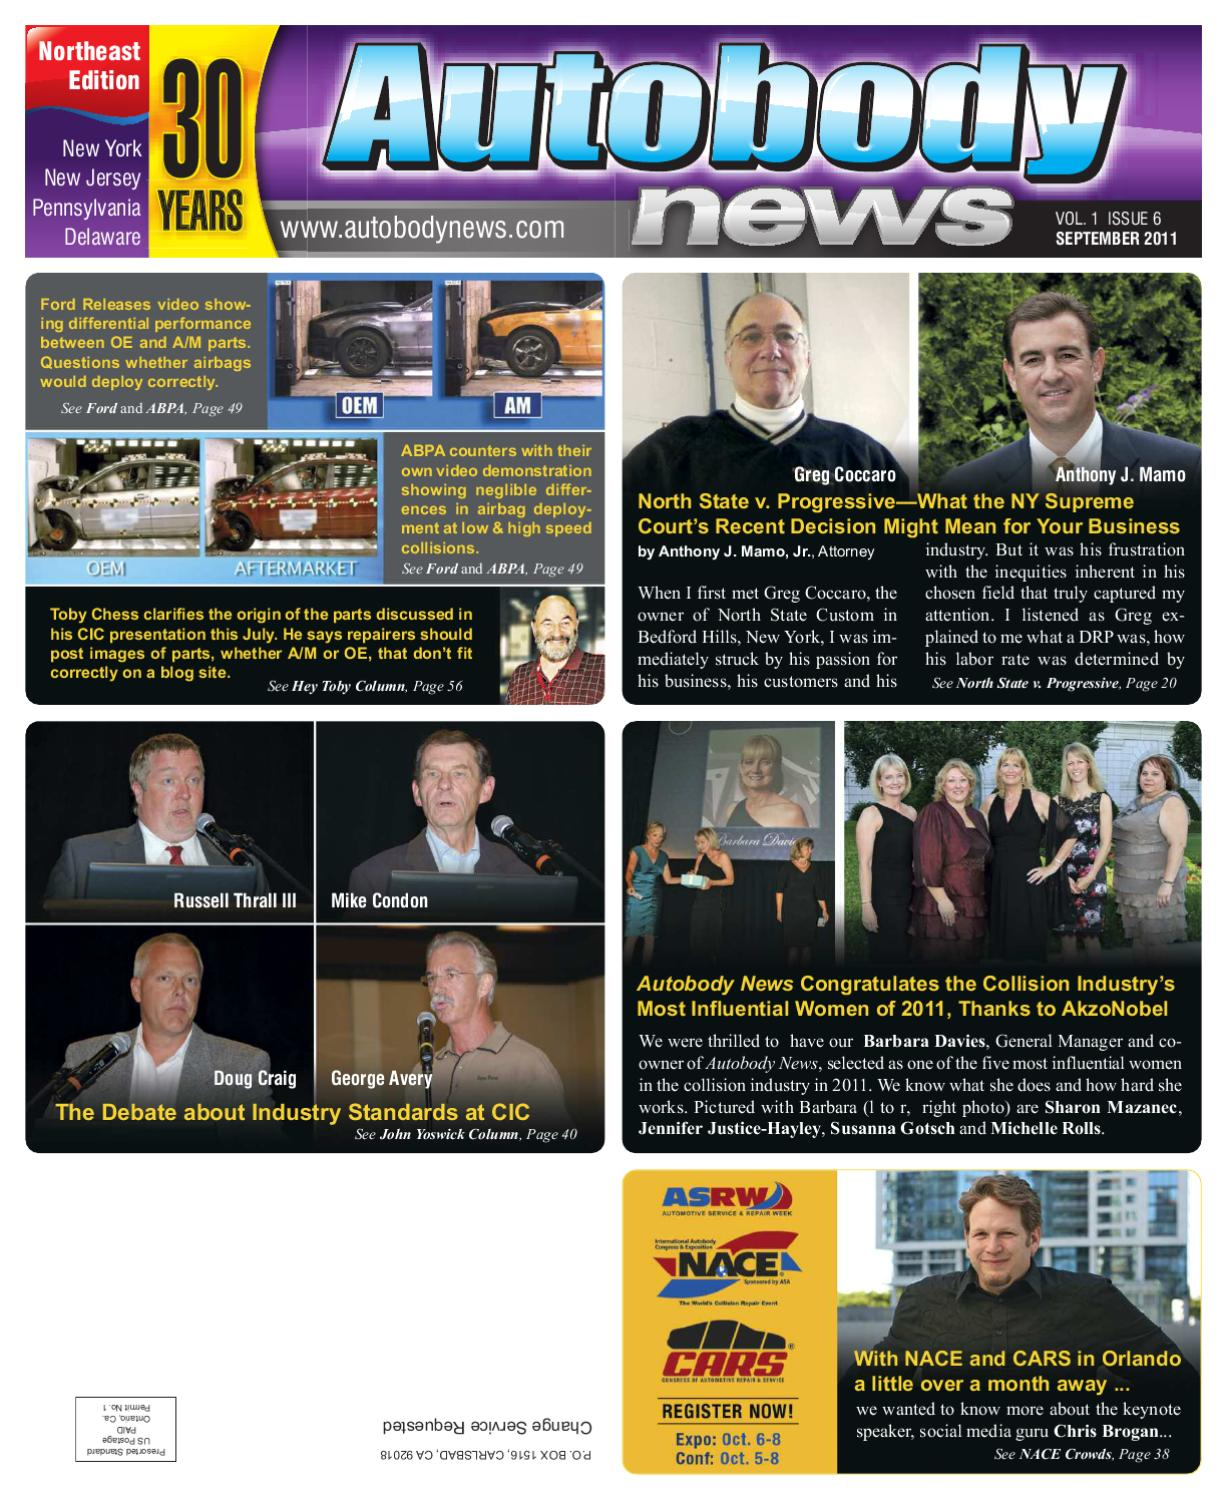 Autobody News September 2011 Northeast Edition By Issuu Net O View Topic Bmw Reset Tool Circuit Diagram Please Check